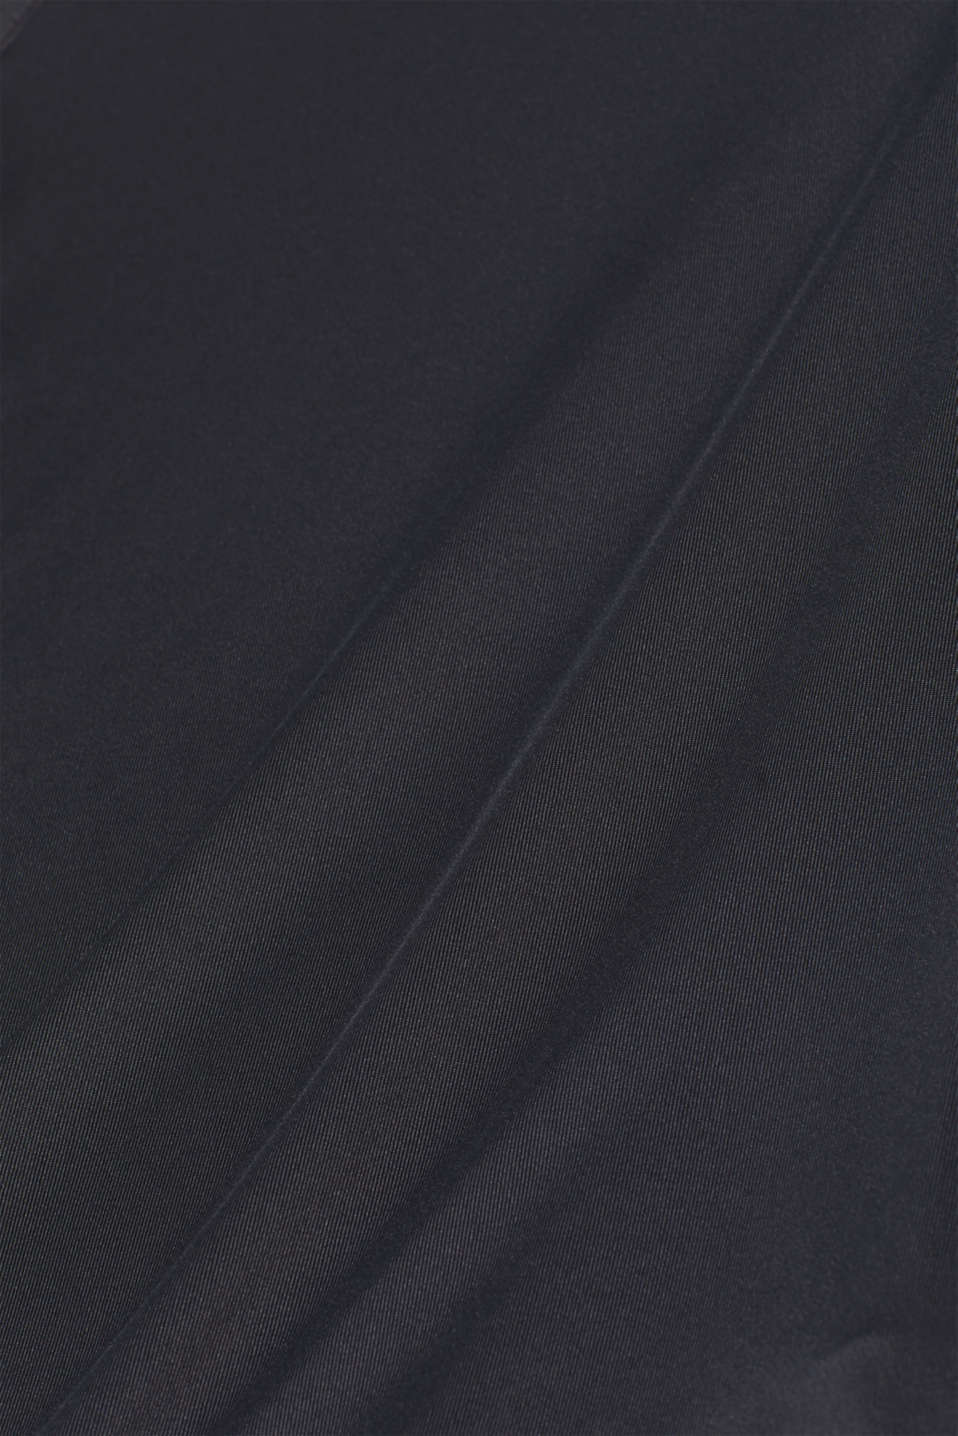 Stretchy long sleeve top with mesh sleeves, E-DRY, BLACK, detail image number 2